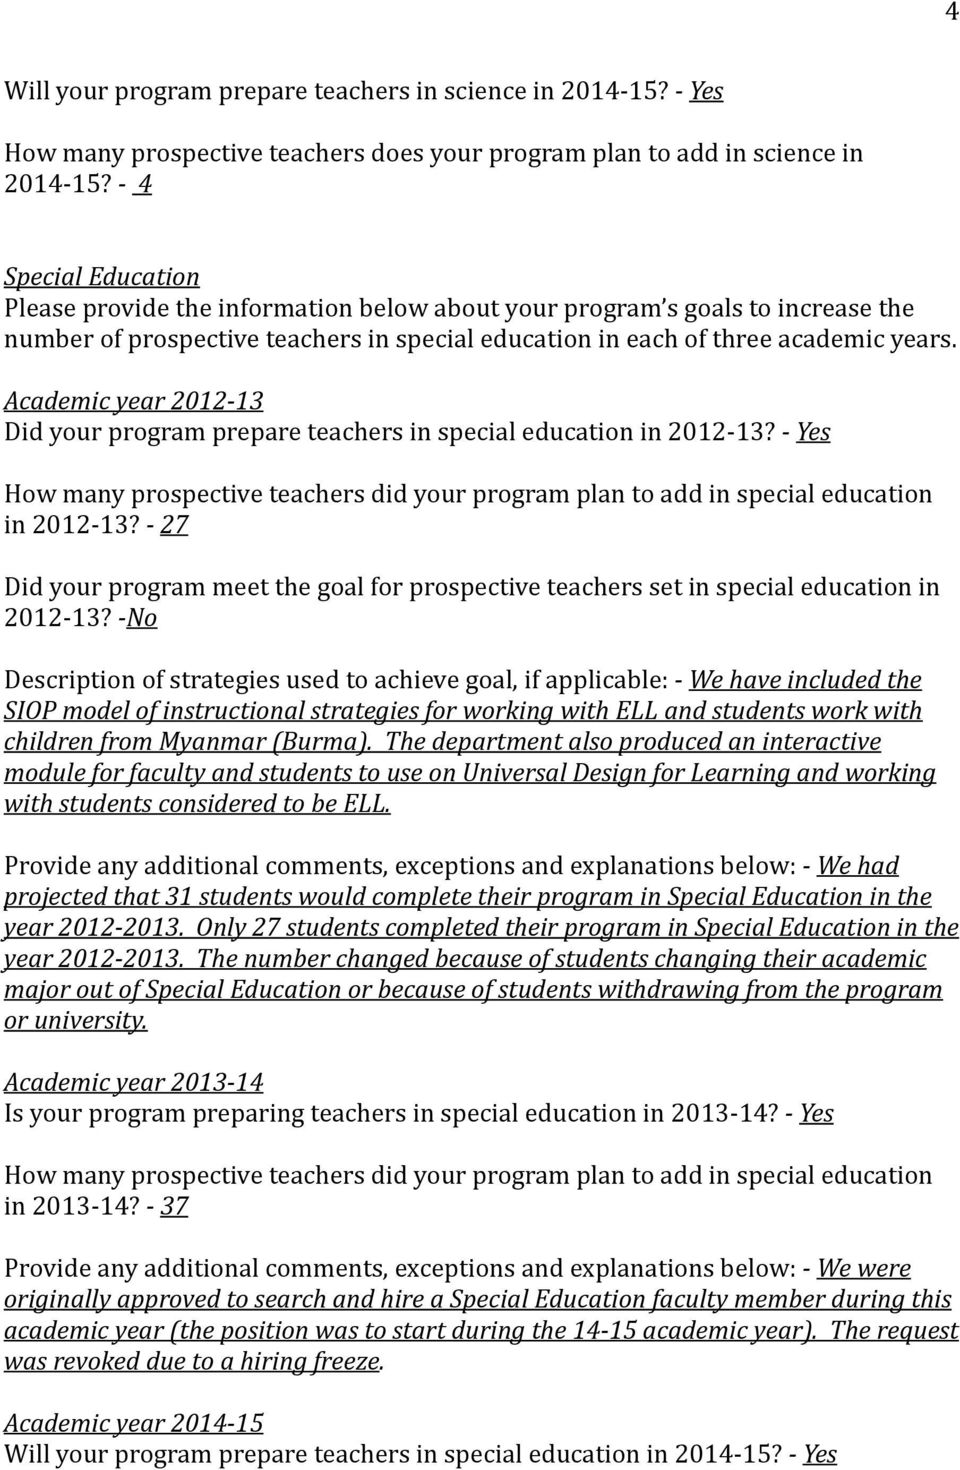 Academic 2012-13 Did your program prepare teachers in special education in 2012-13? - How many prospective teachers did your program plan to add in special education in 2012-13?